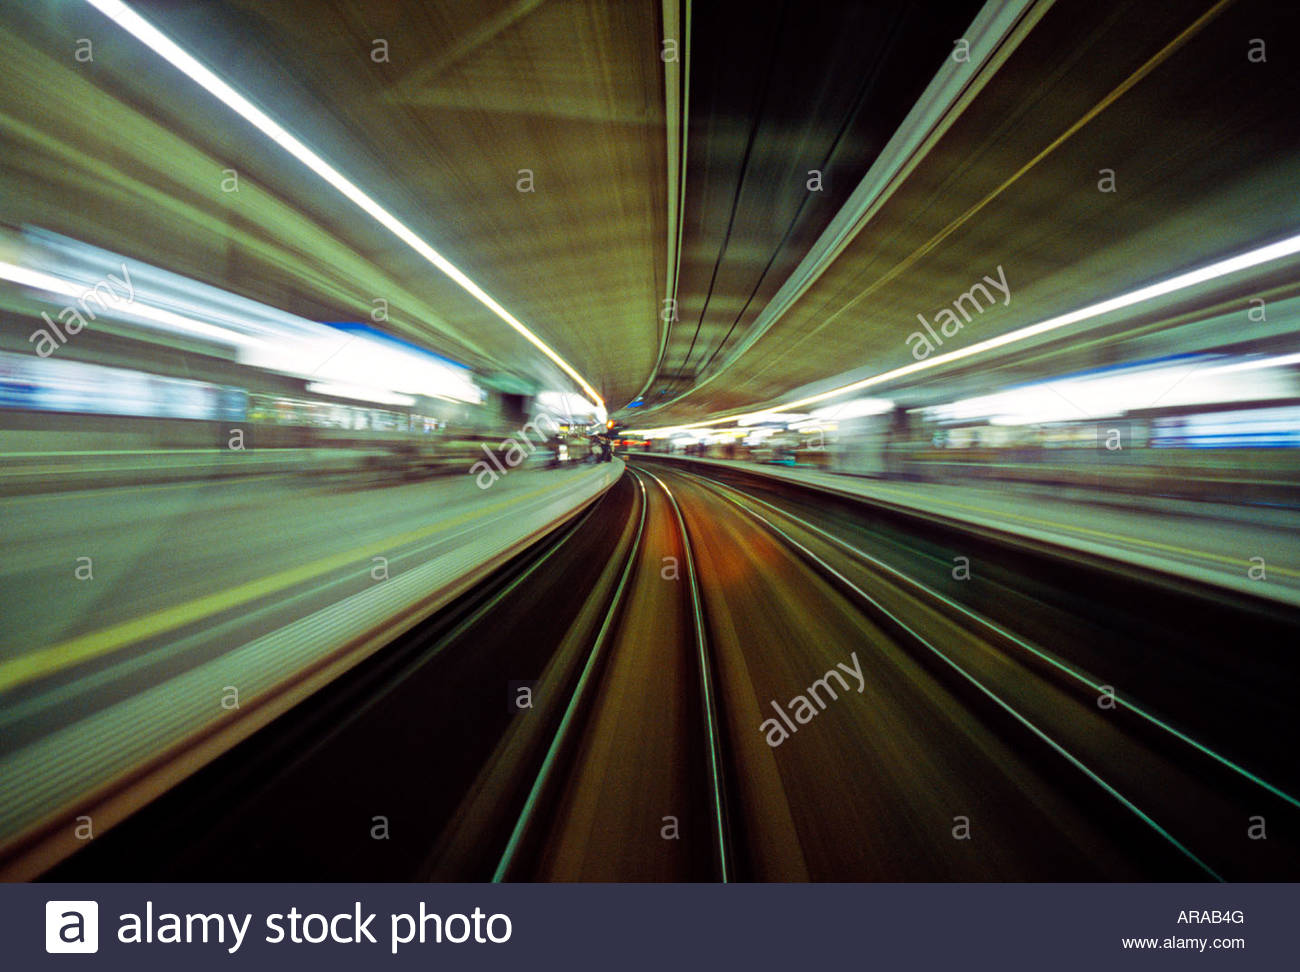 Impressionistic view from a speeding train passing through a station on the Odakyu line from Tokyo to Odawara, Japan - Stock Image